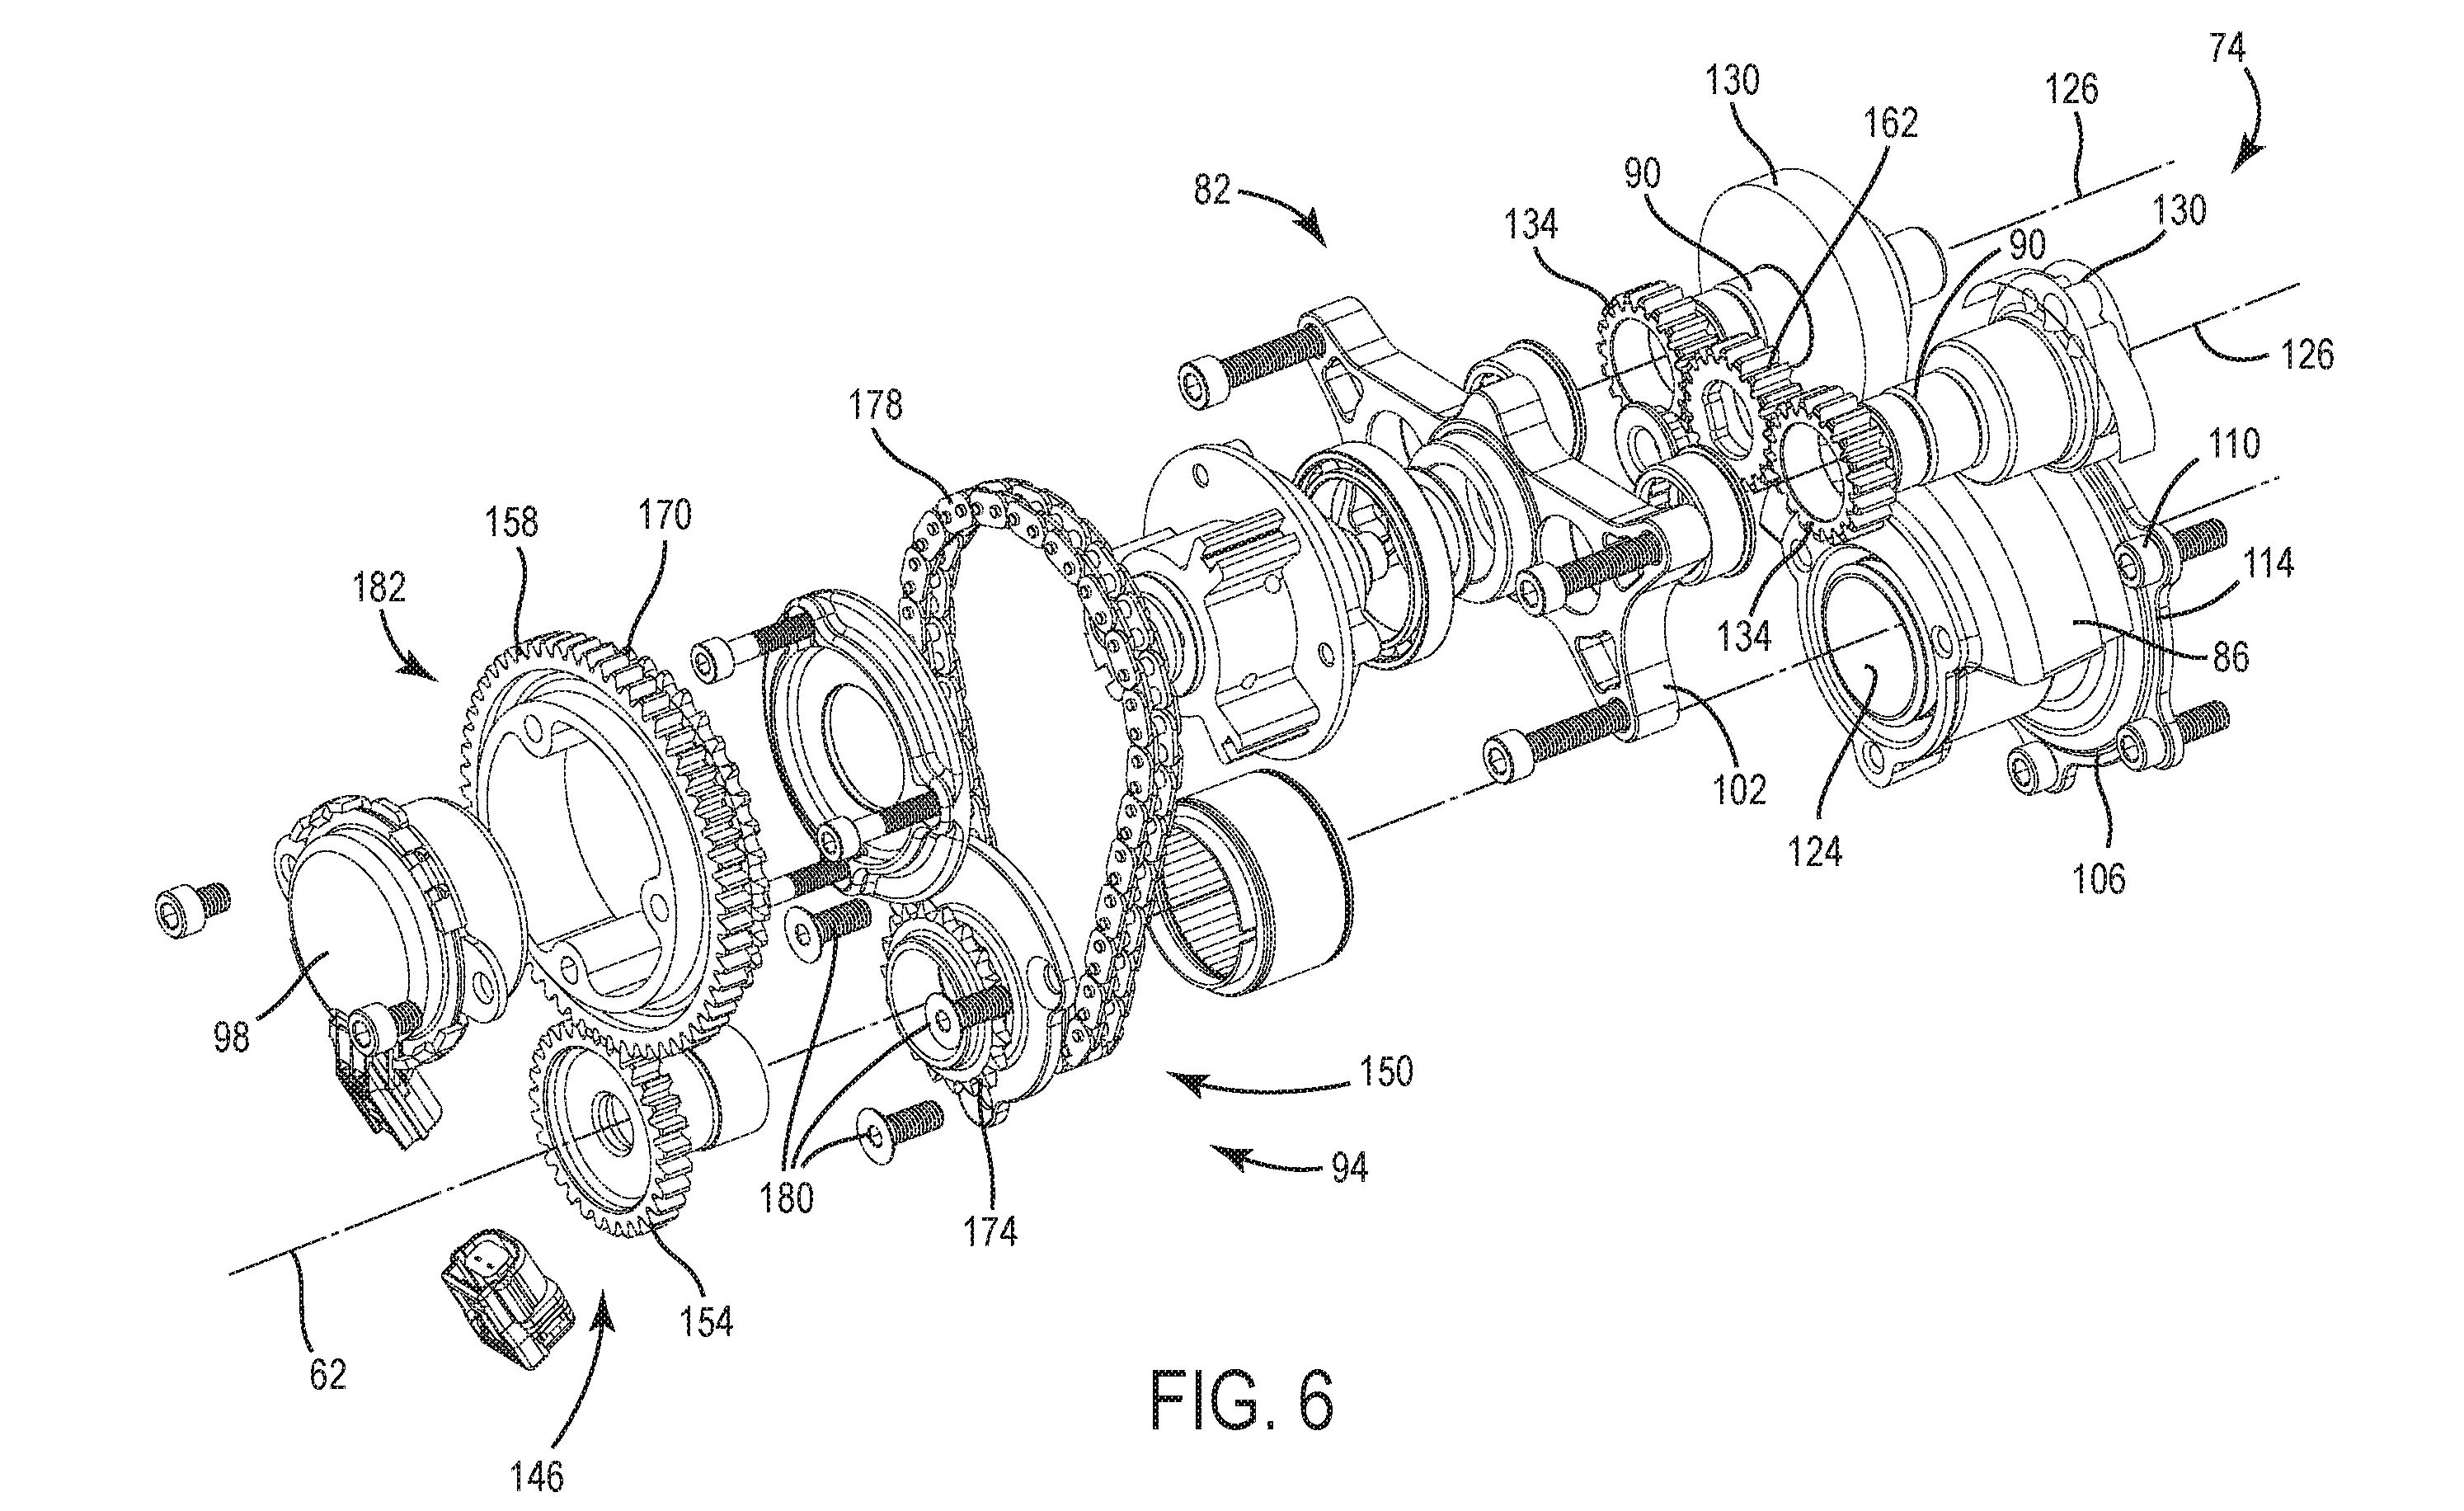 Harley-Davidson Files Patent for New V-Twin Engine with VVT